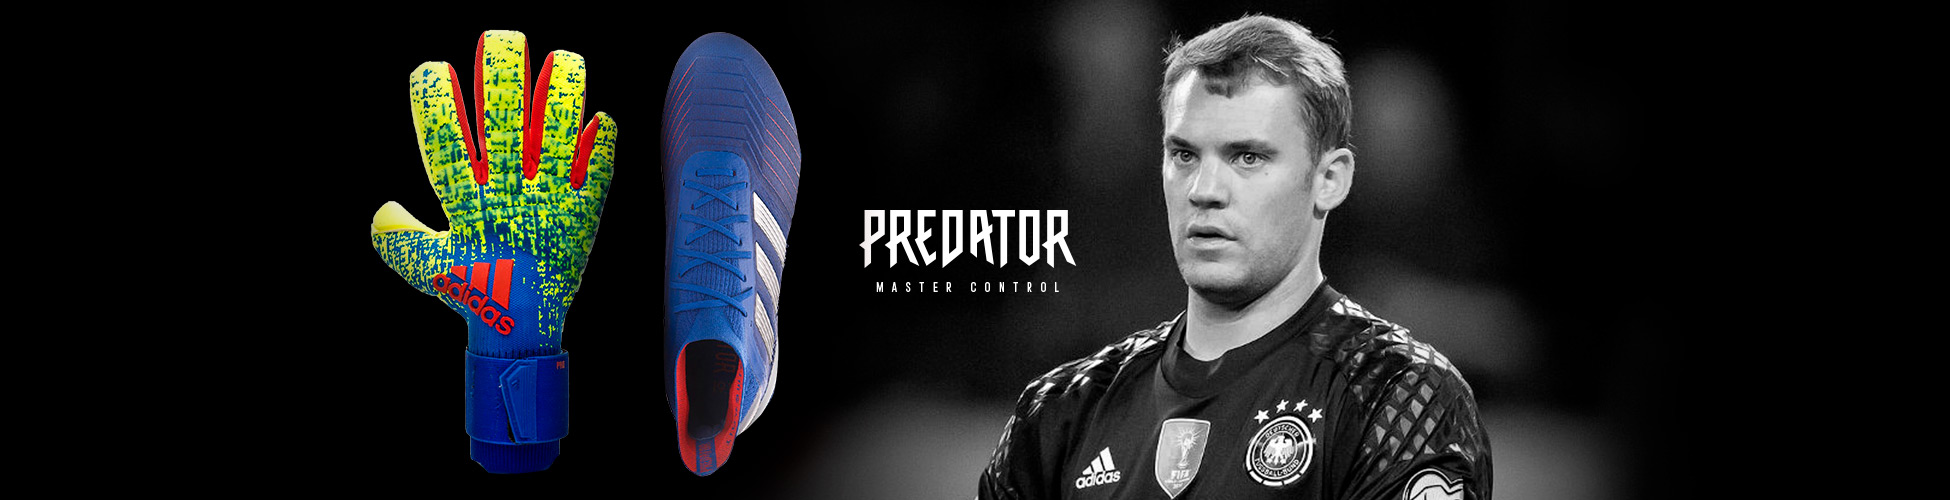 299f304ba08 The gloves and boots worn by Manuel Neuer - Football store Fútbol ...